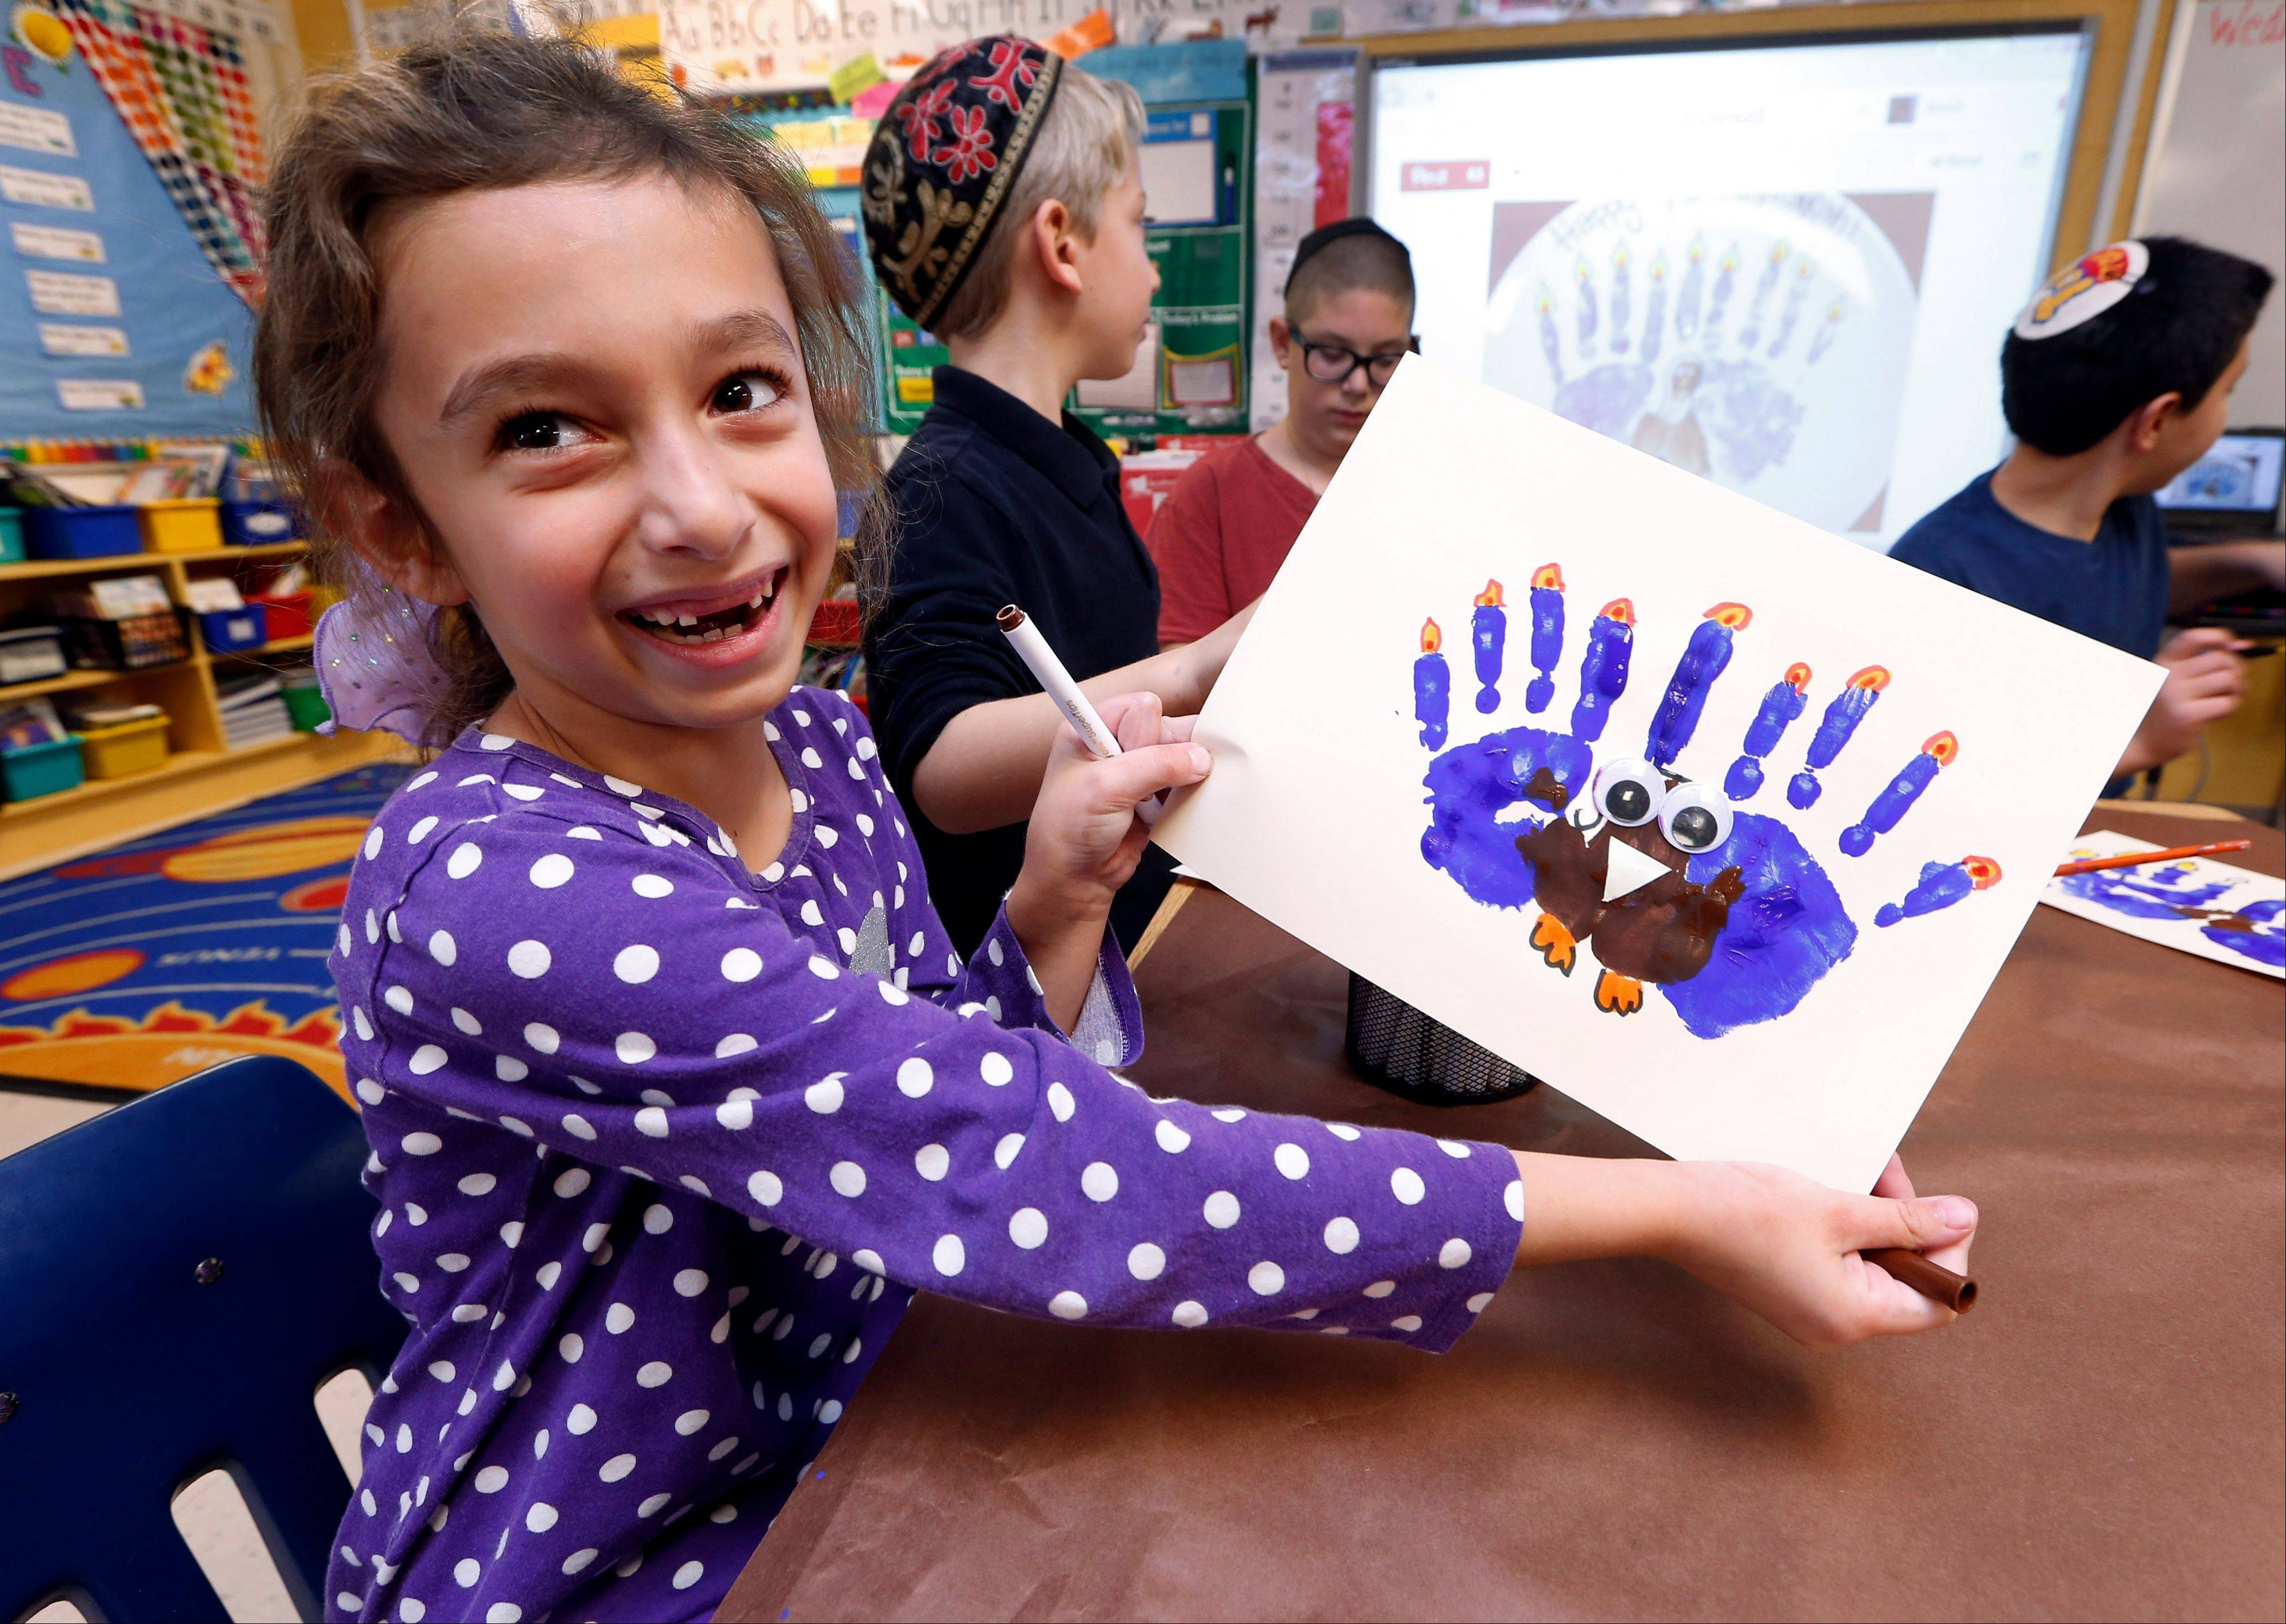 Second-grader Rozie Aronov, 7, holds up a menurkey, a paper-and-paint mashup of a menorah and turkey, she created at Hillel Day School in Farmington Hills, Mich. The recent class project reflects one way for Jews in the United States to deal with a rare quirk of the calendar that overlaps Thanksgiving with the start of Hanukkah. The last time it happened was 1888 and the next time is 79,043 years from now � by one estimate that �s widely repeated in Jewish circles.